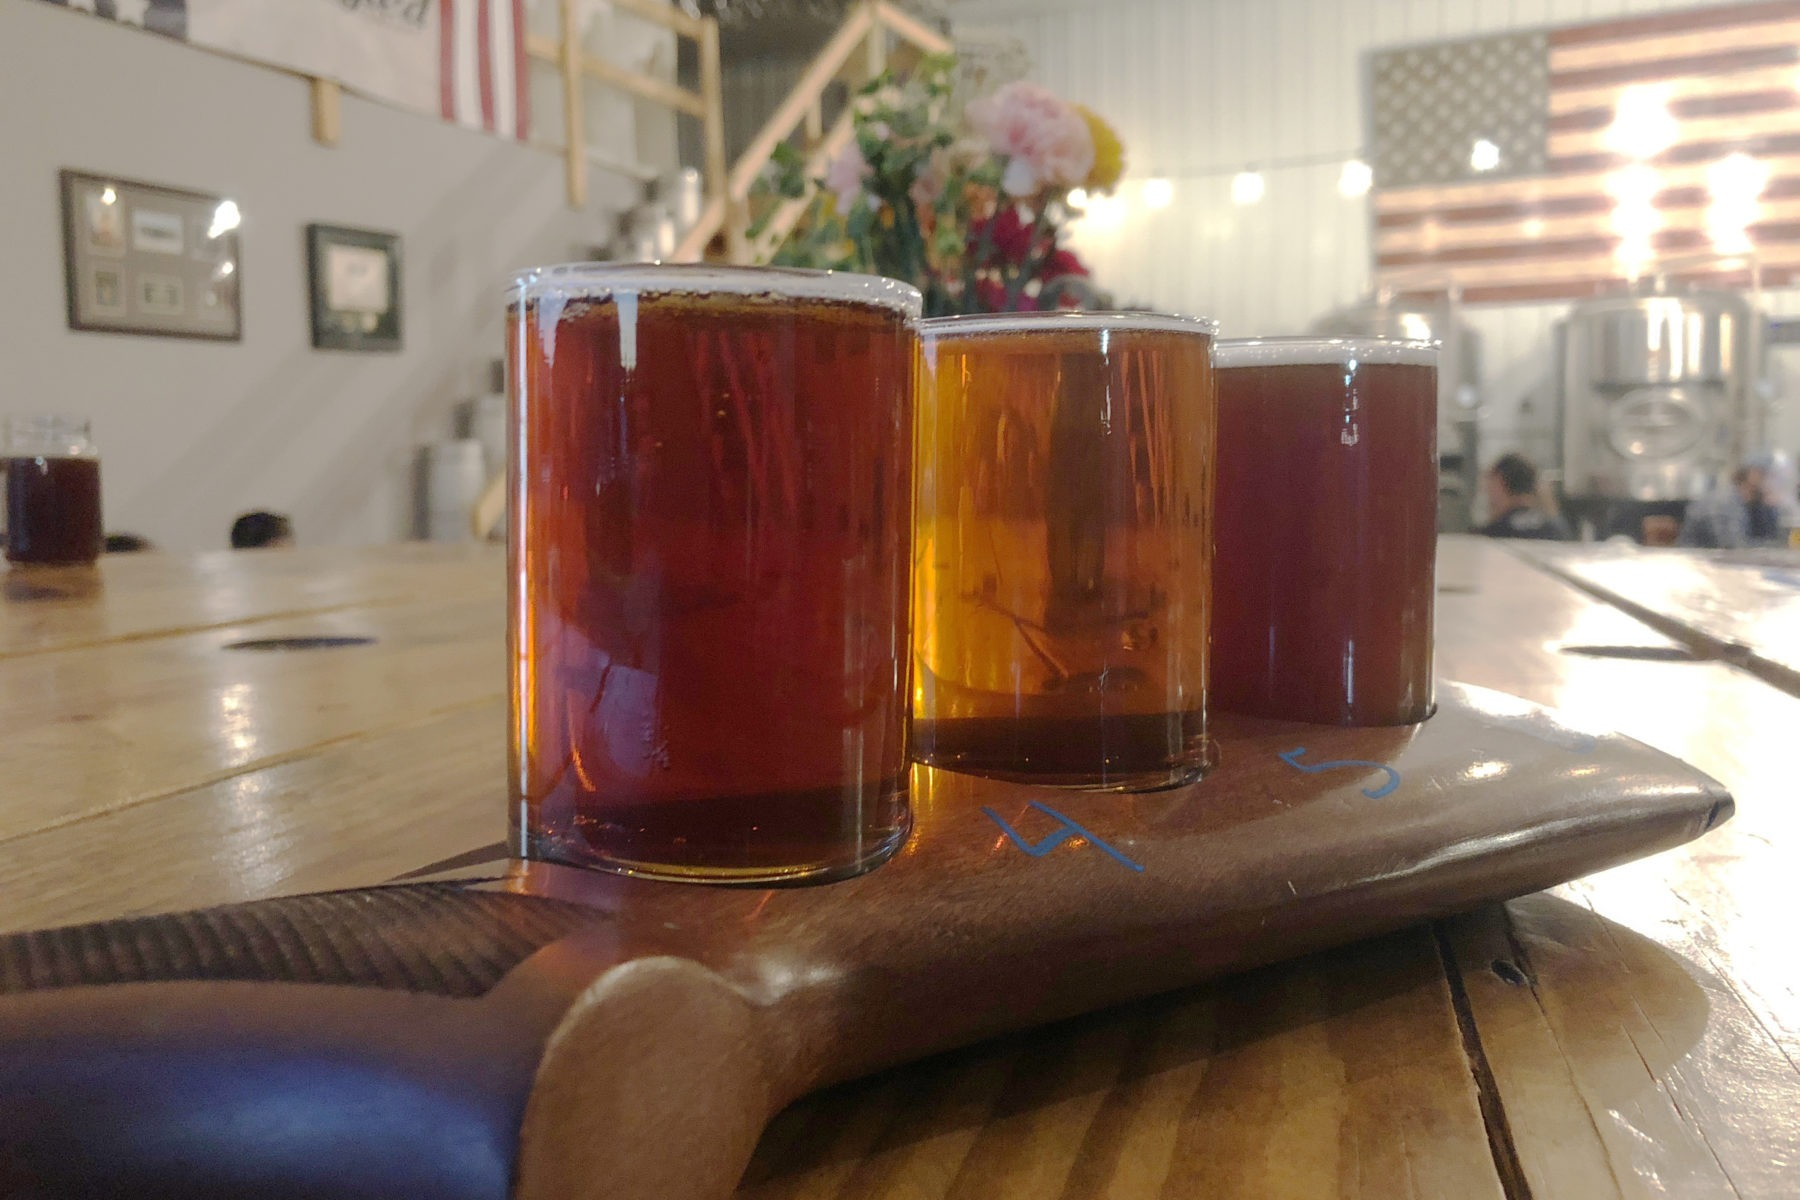 A flight of three beers from the Star Spangled Brewery in Clarksville, Tennessee